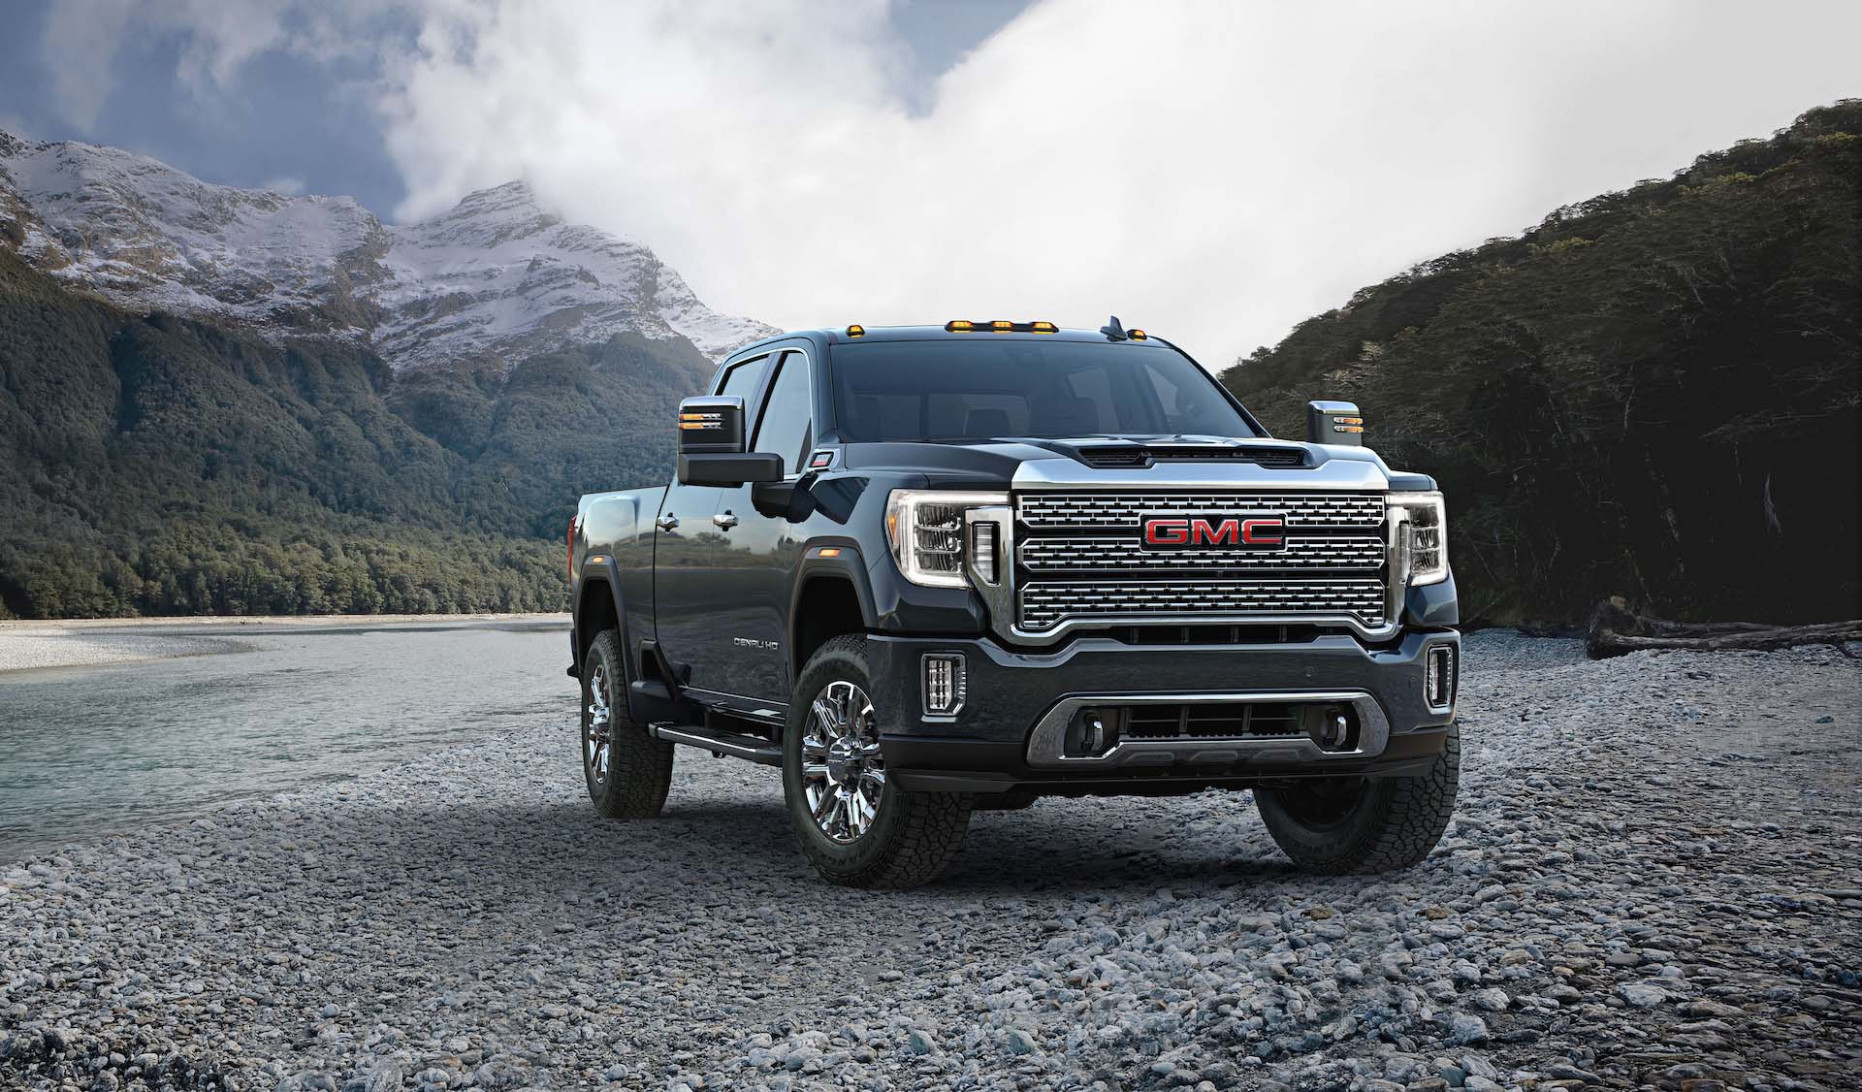 11 GMC Sierra HD hauls in lower starting price than previous model